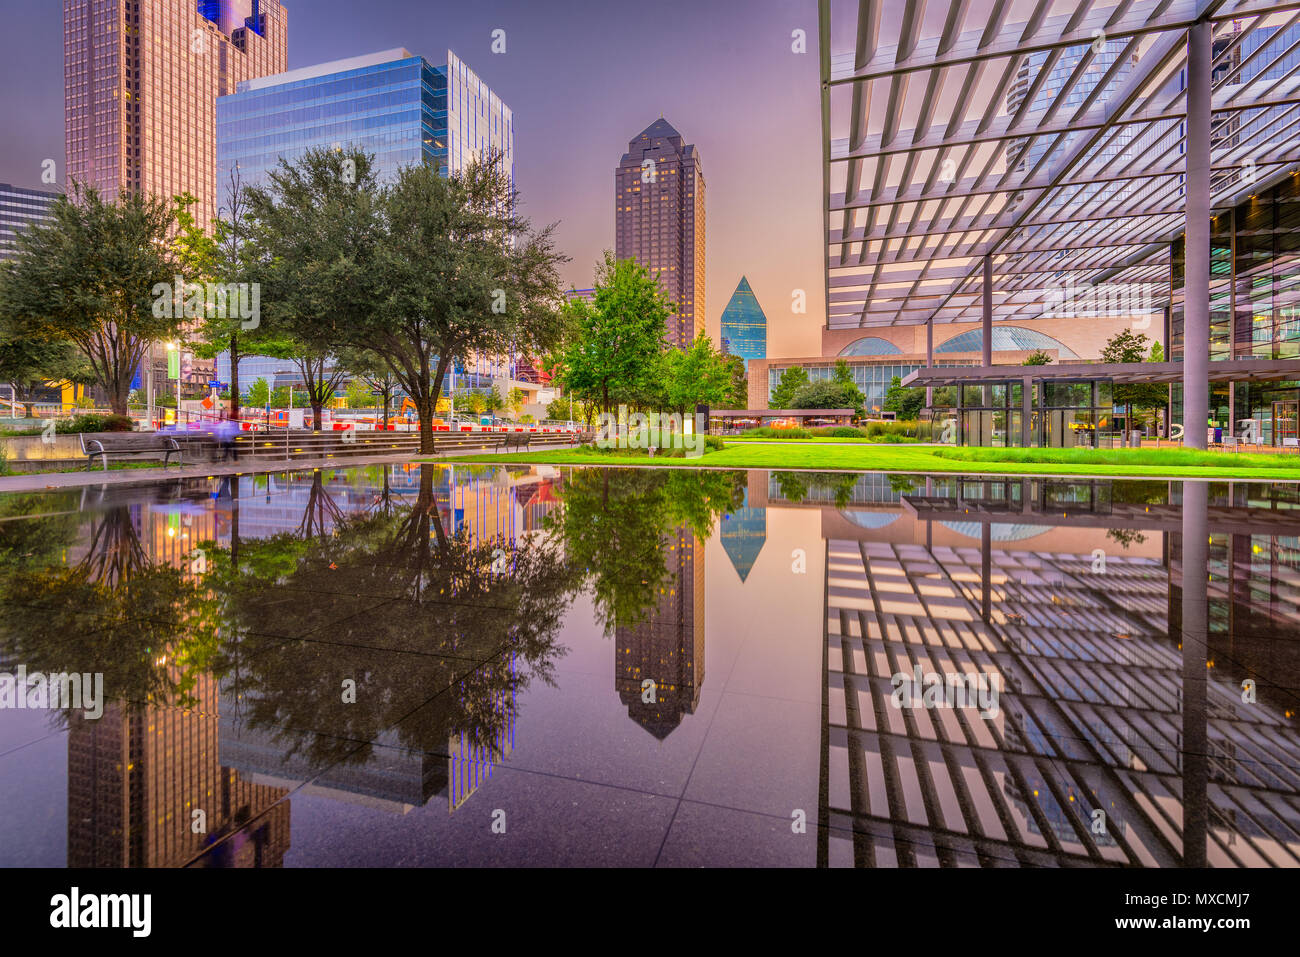 Dallas, Texas, USA downtown plaza and cityscape at twilight. - Stock Image